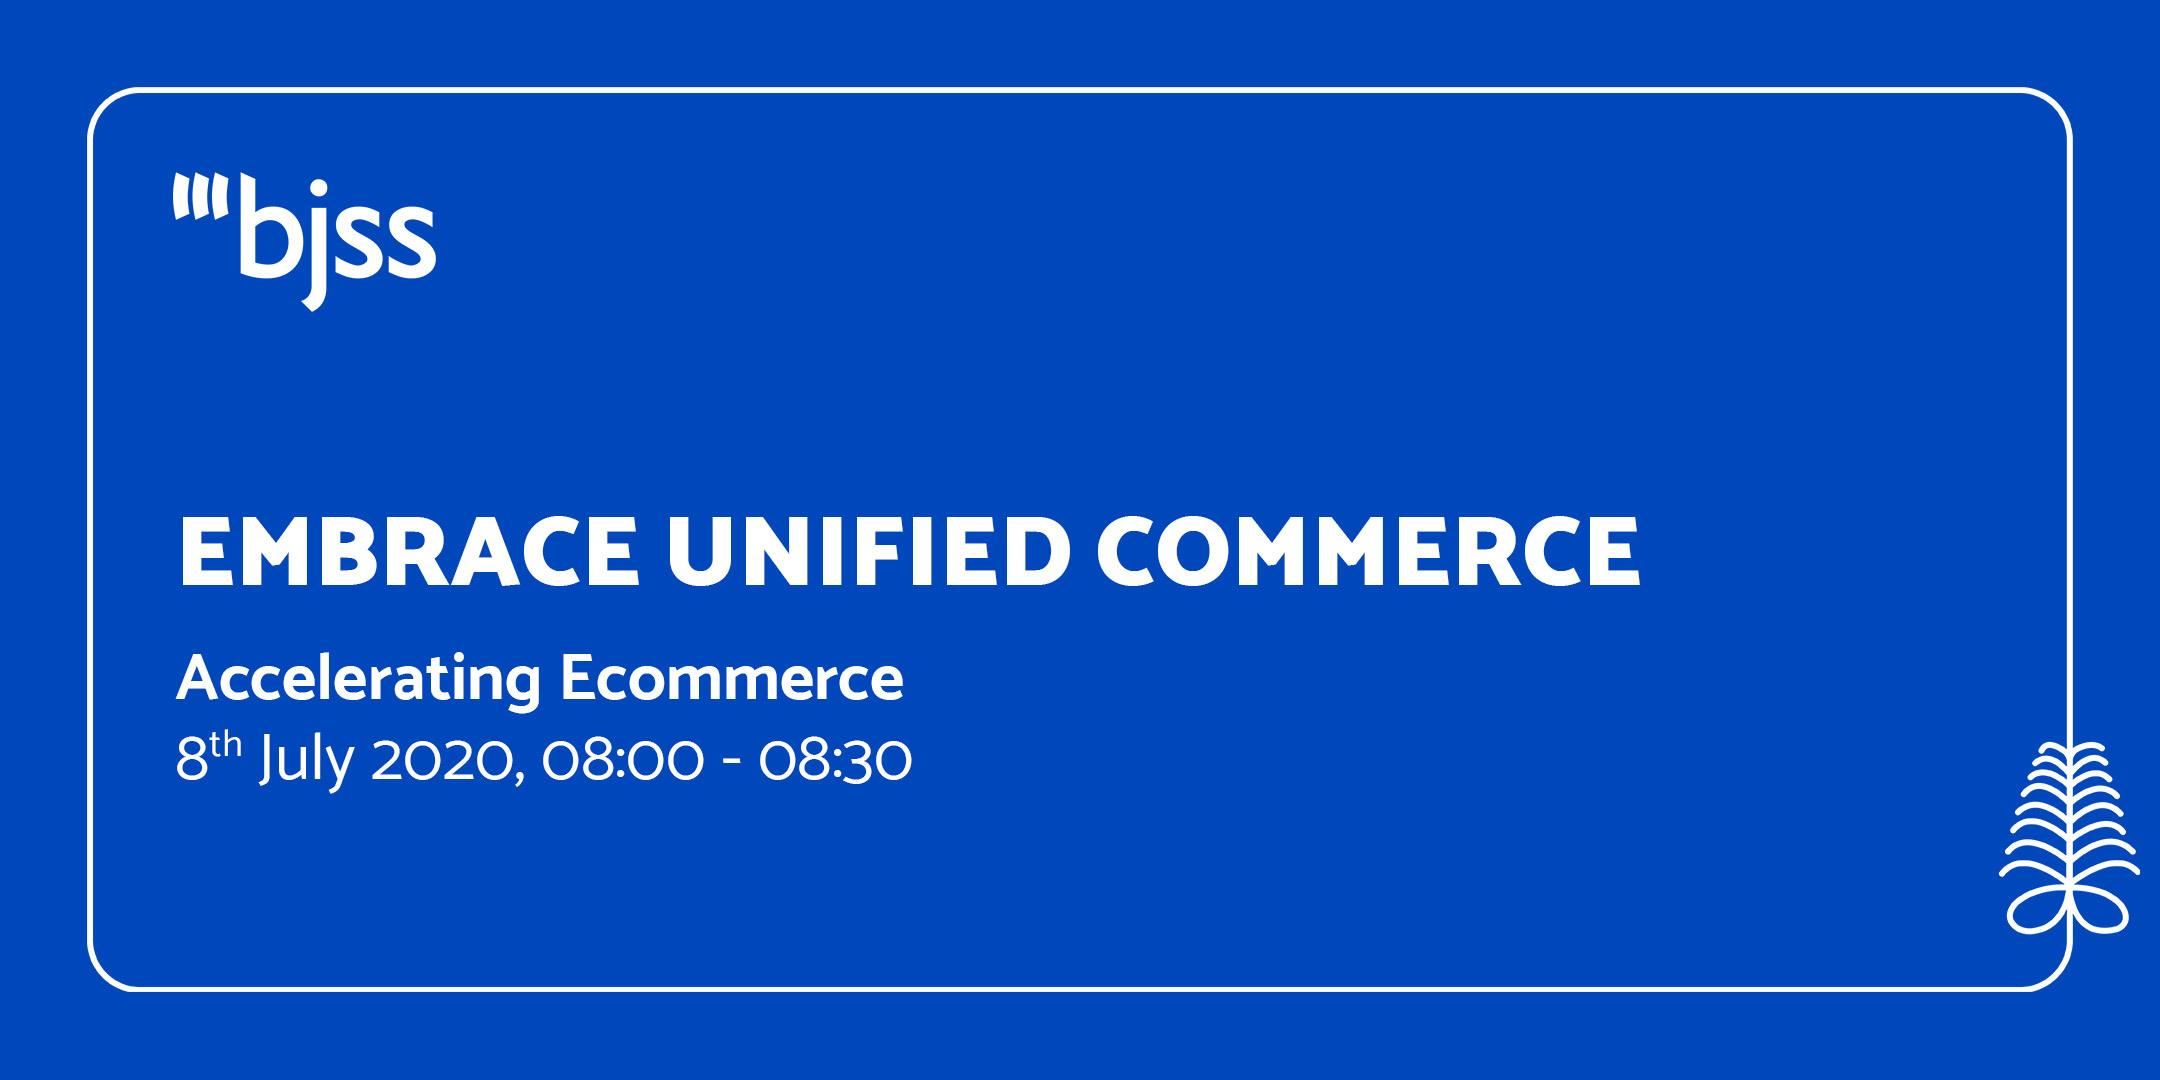 Unified Commerce - Accelerating Ecommerce